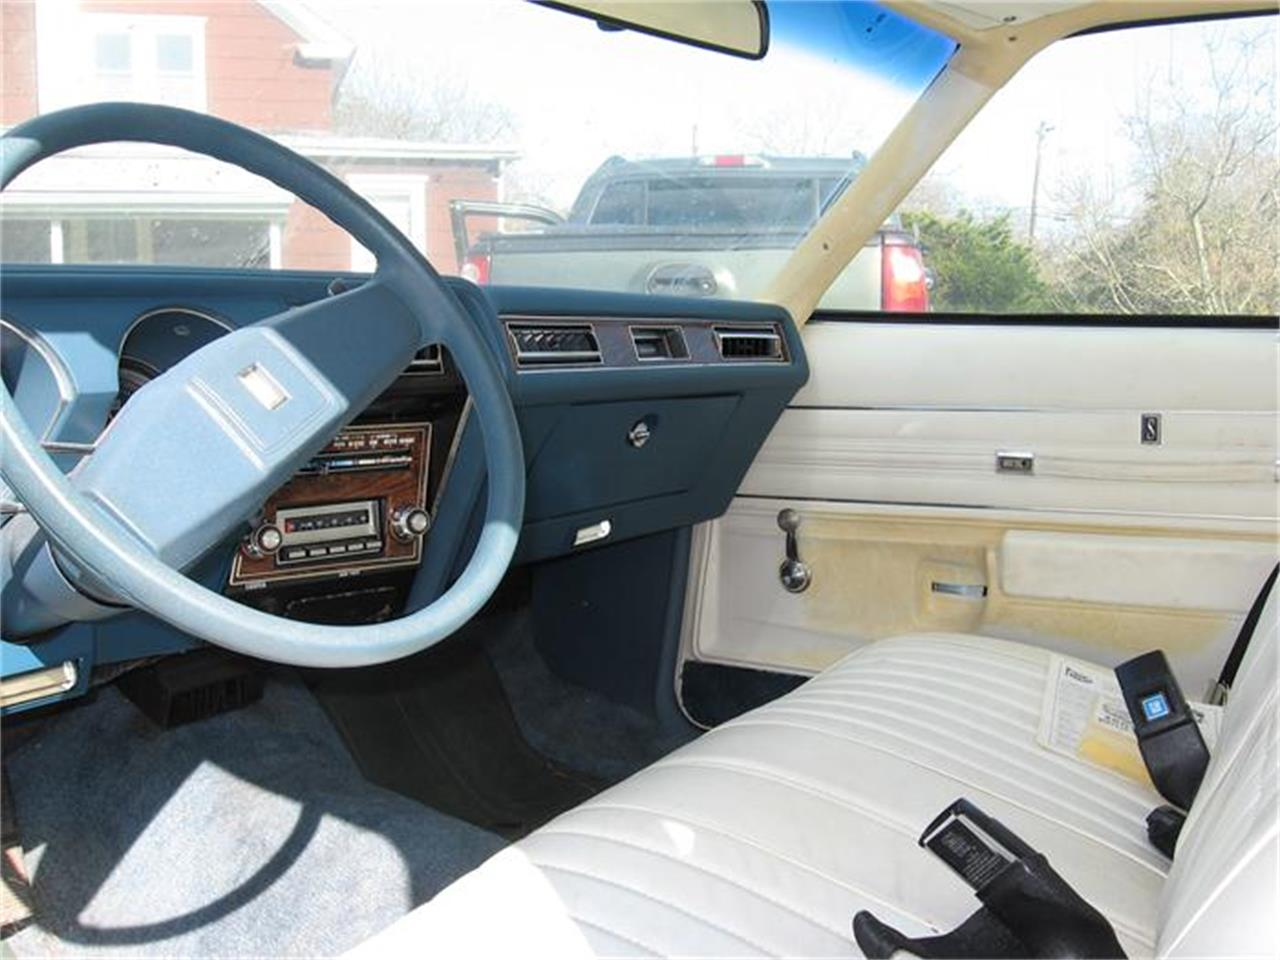 Large Picture of 1977 Cutlass S - $10,000.00 Offered by a Private Seller - 7YN4